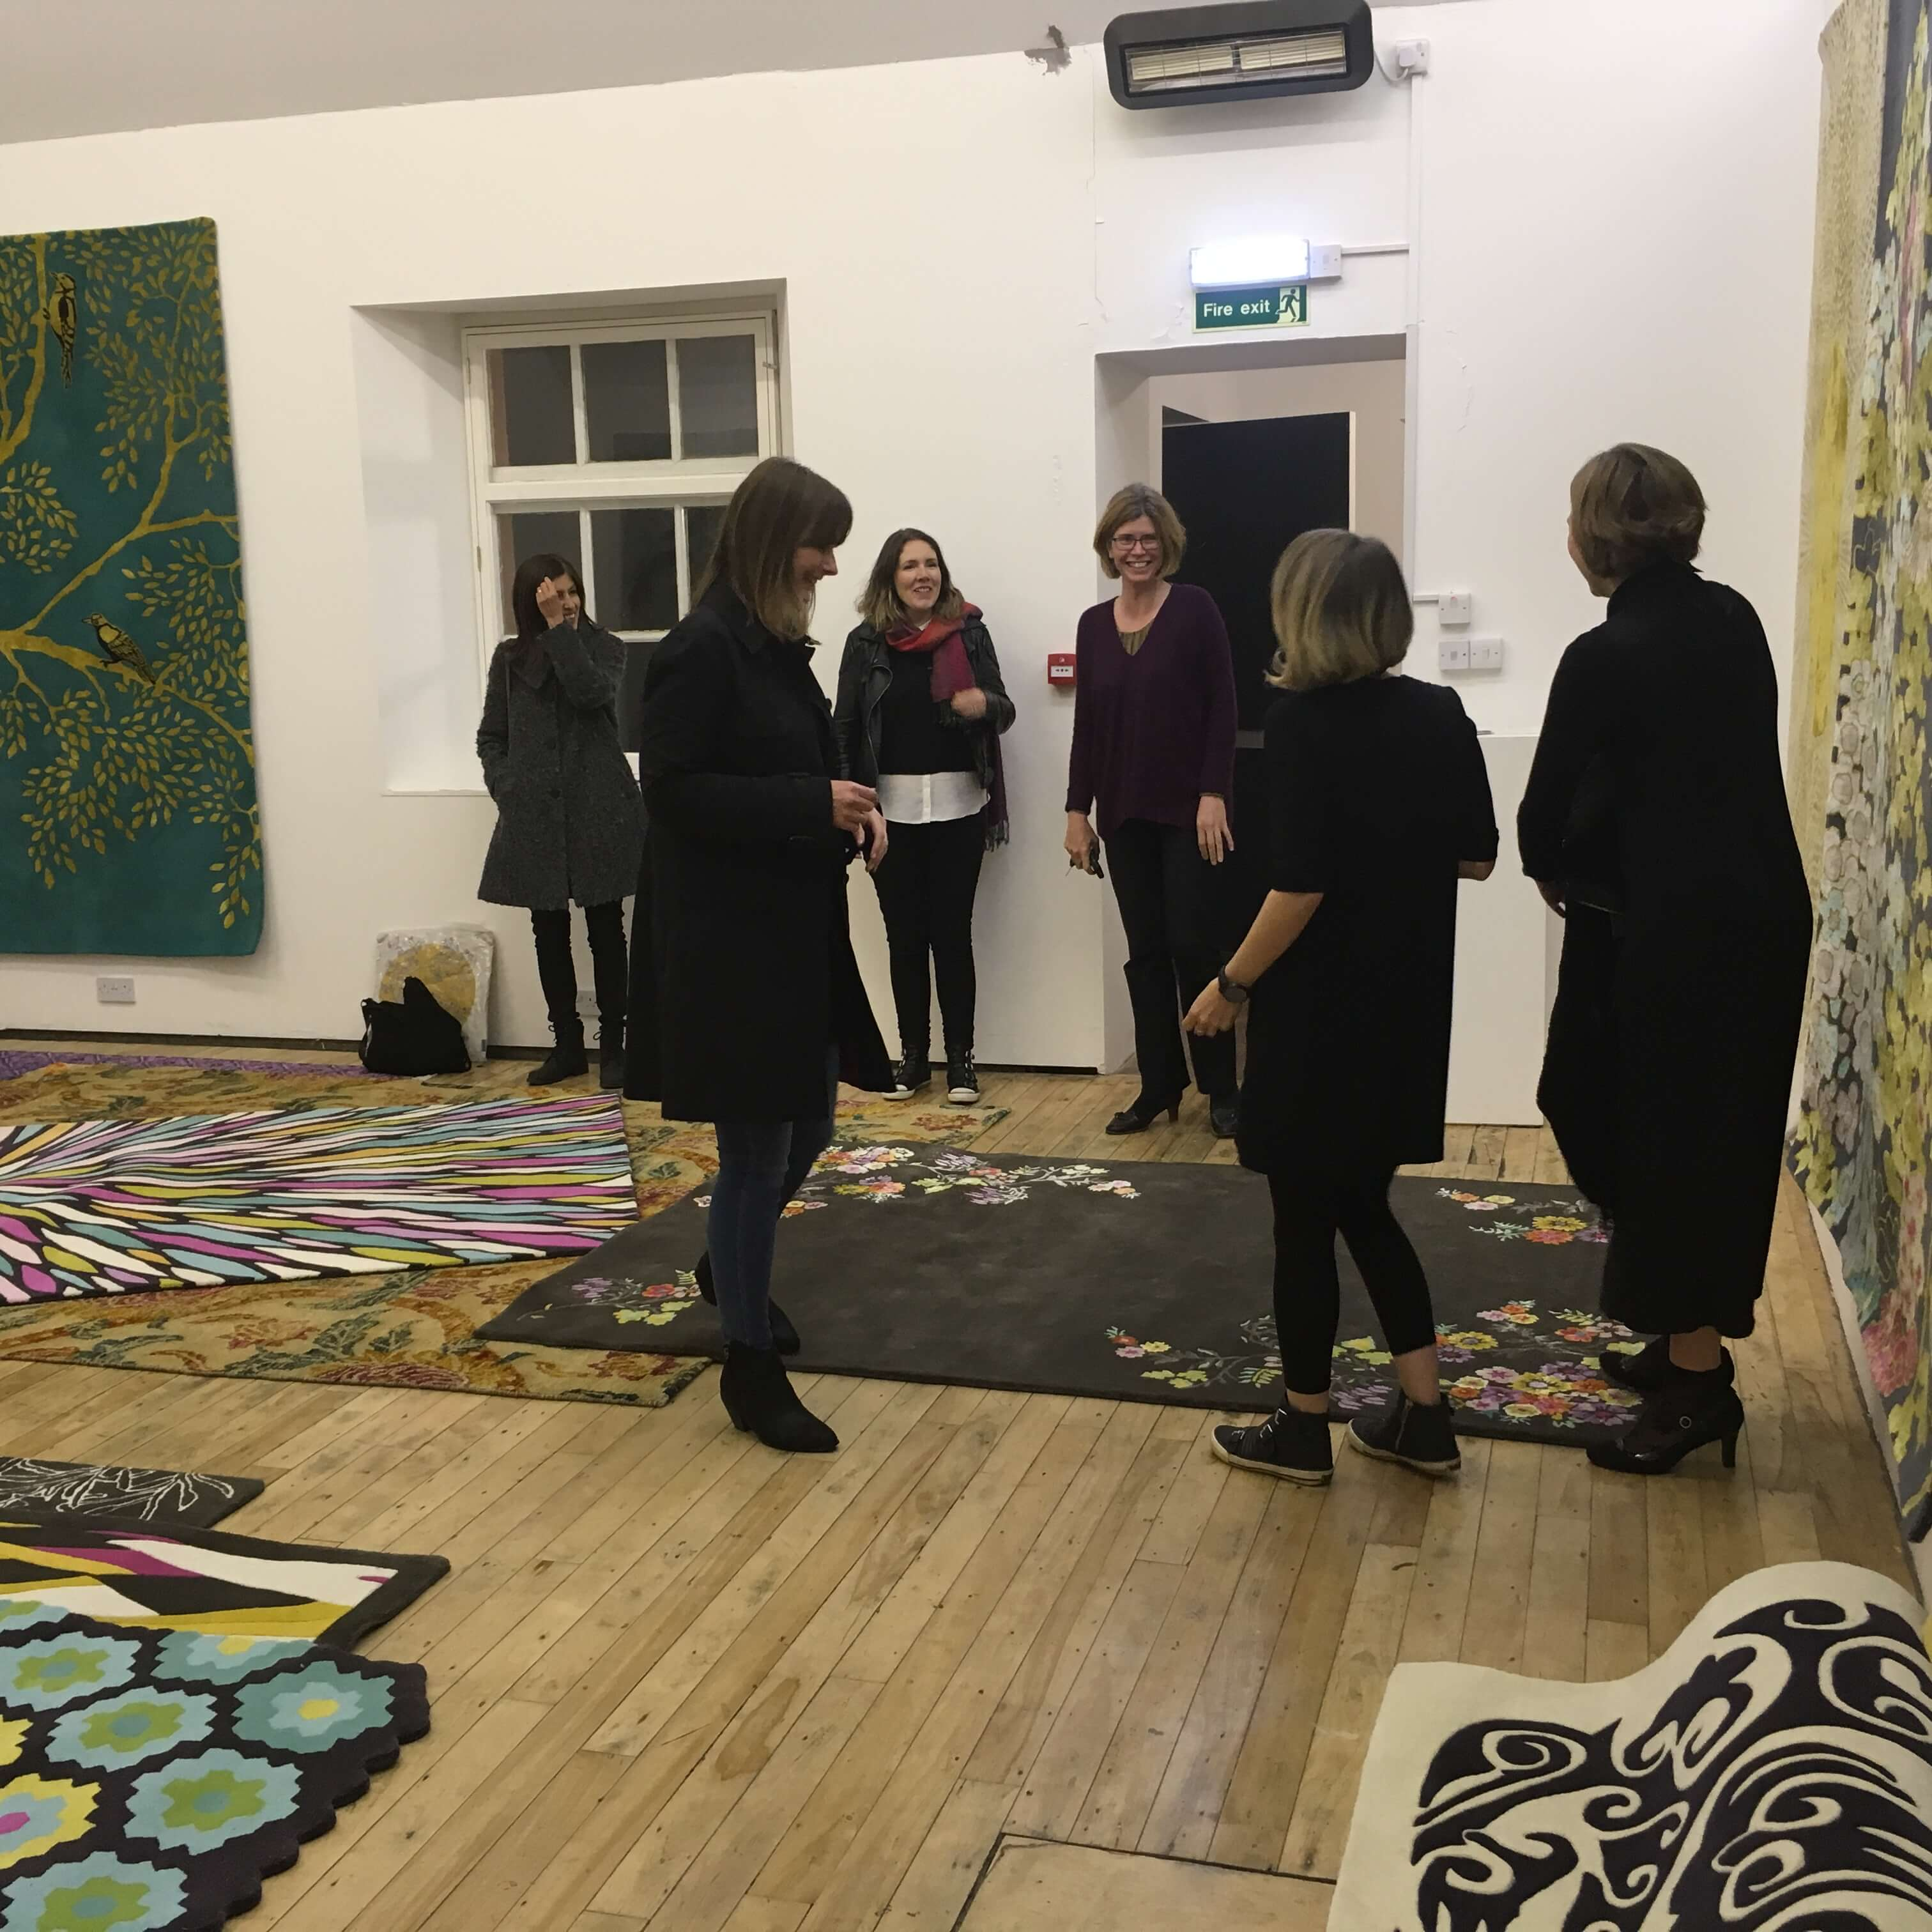 Our Chinese Deco rug getting lots of admirers.